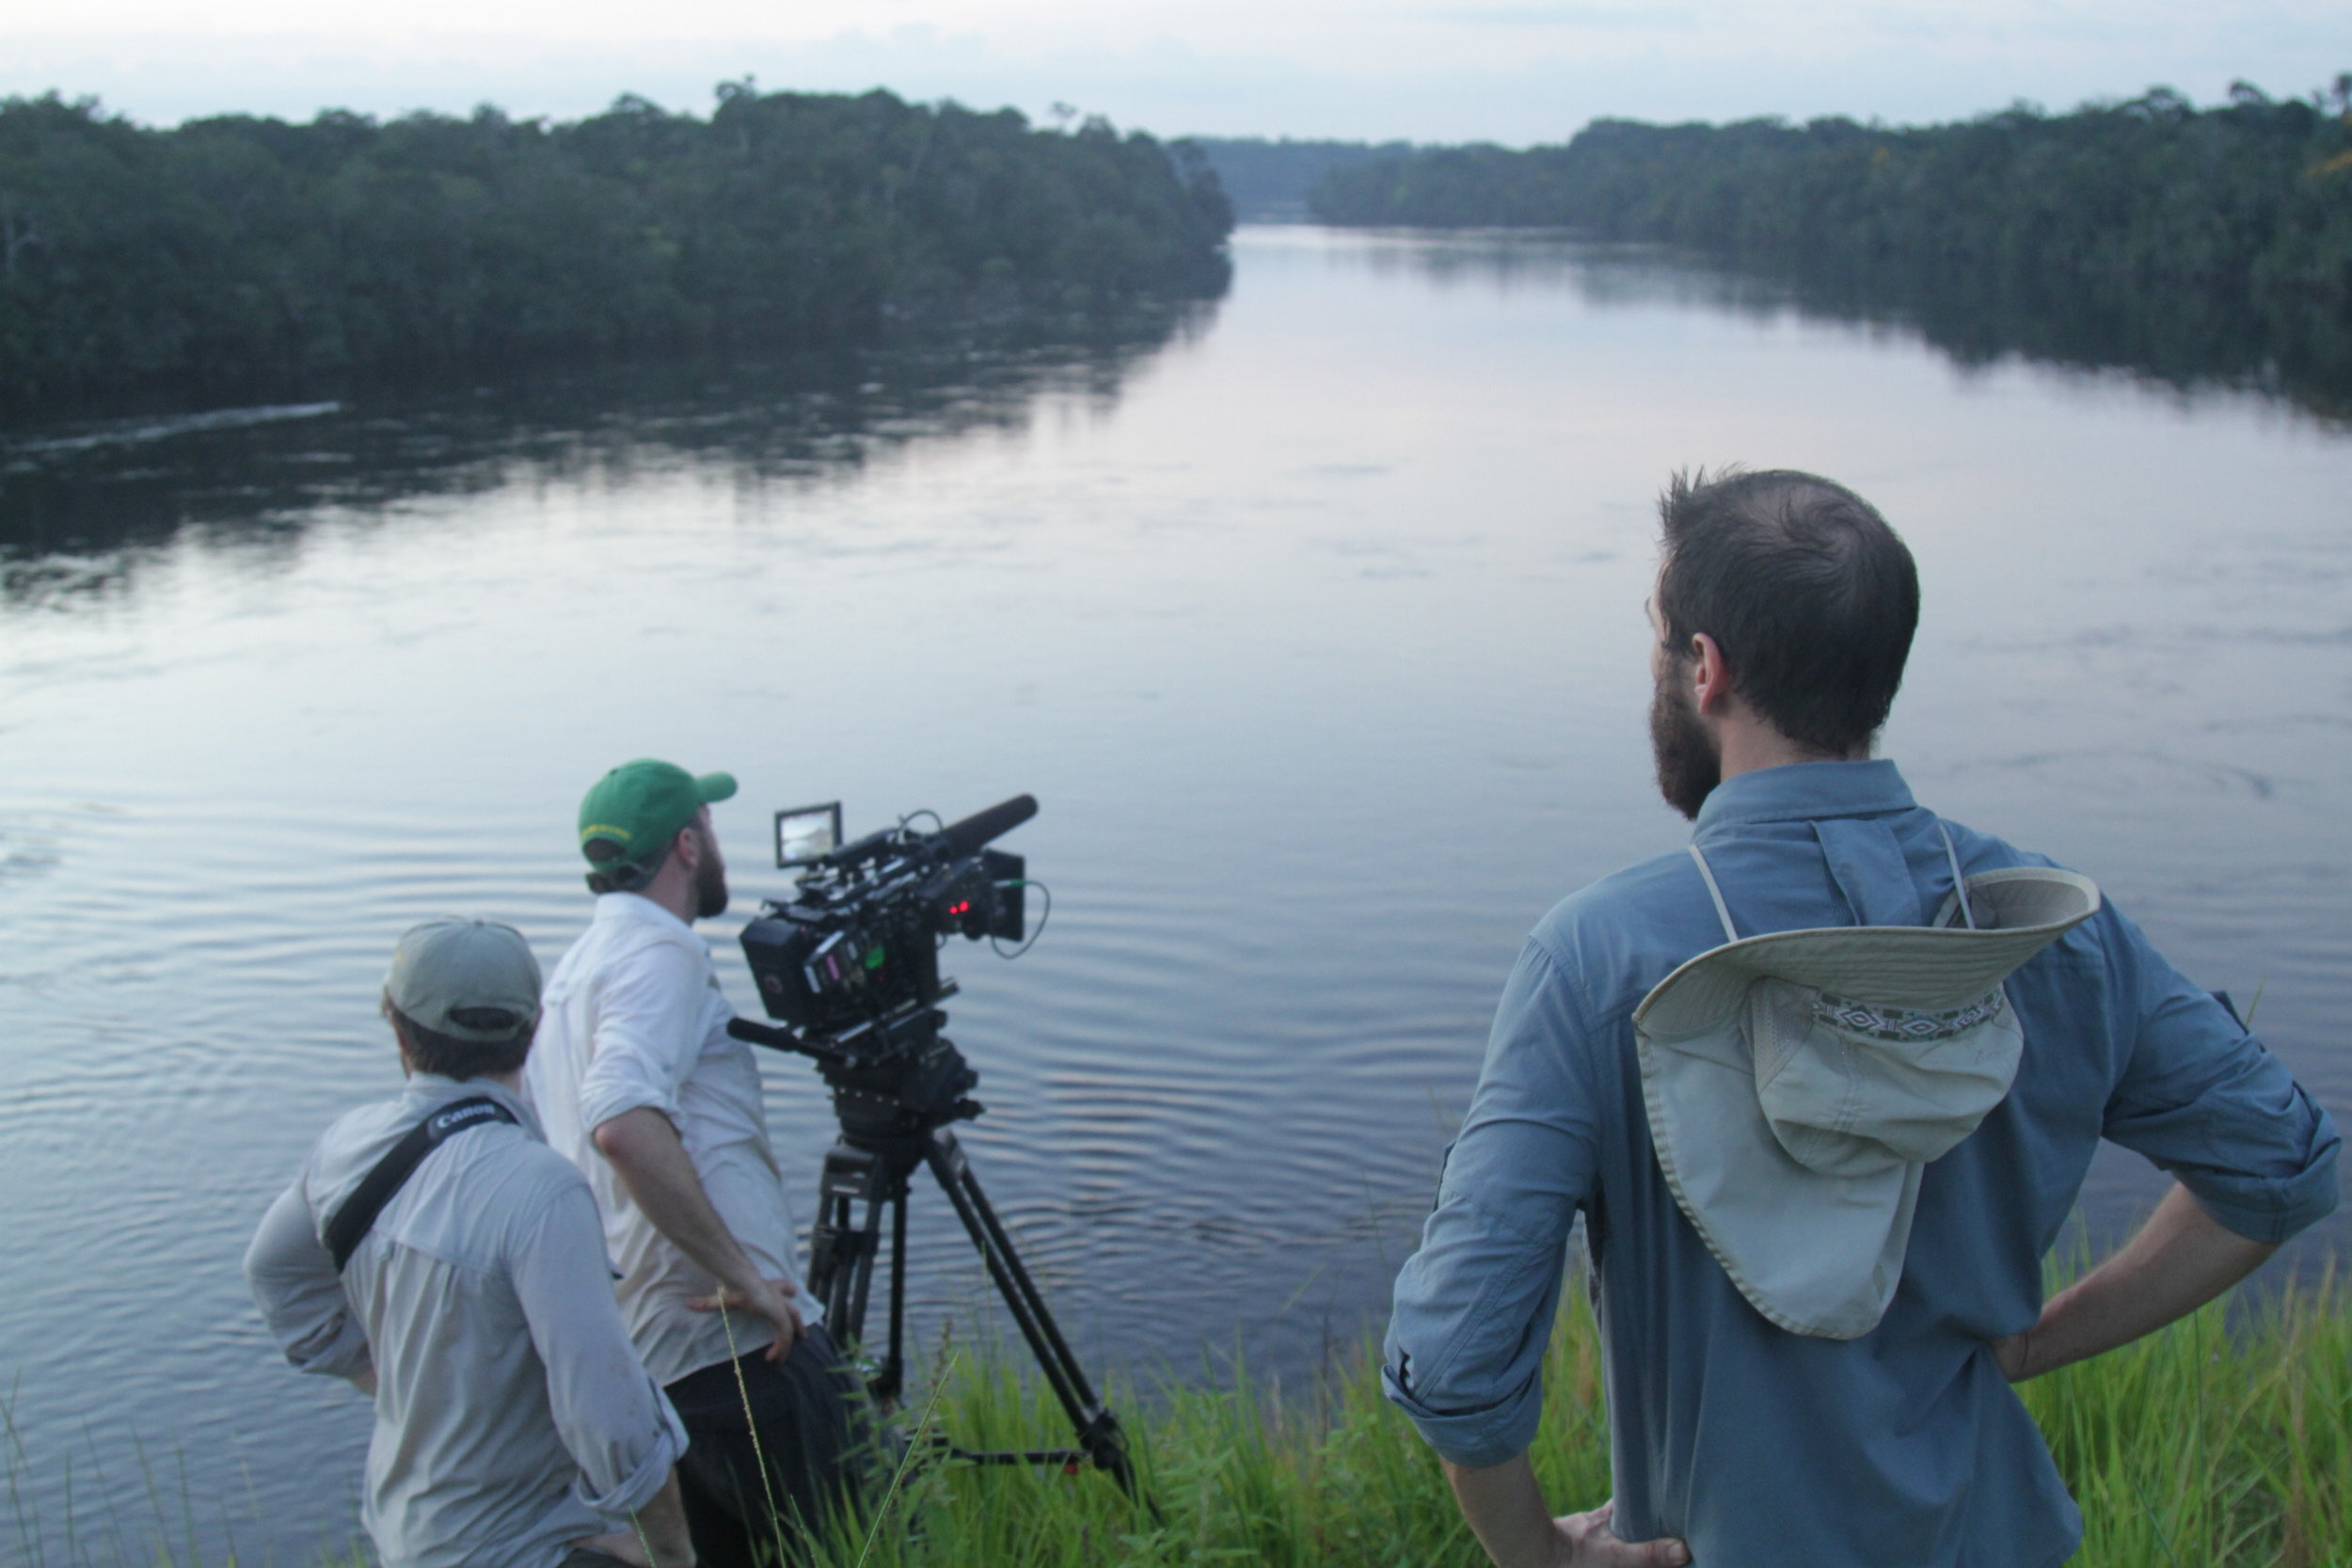 The crew in Tunuí taking a shot of the Içana river